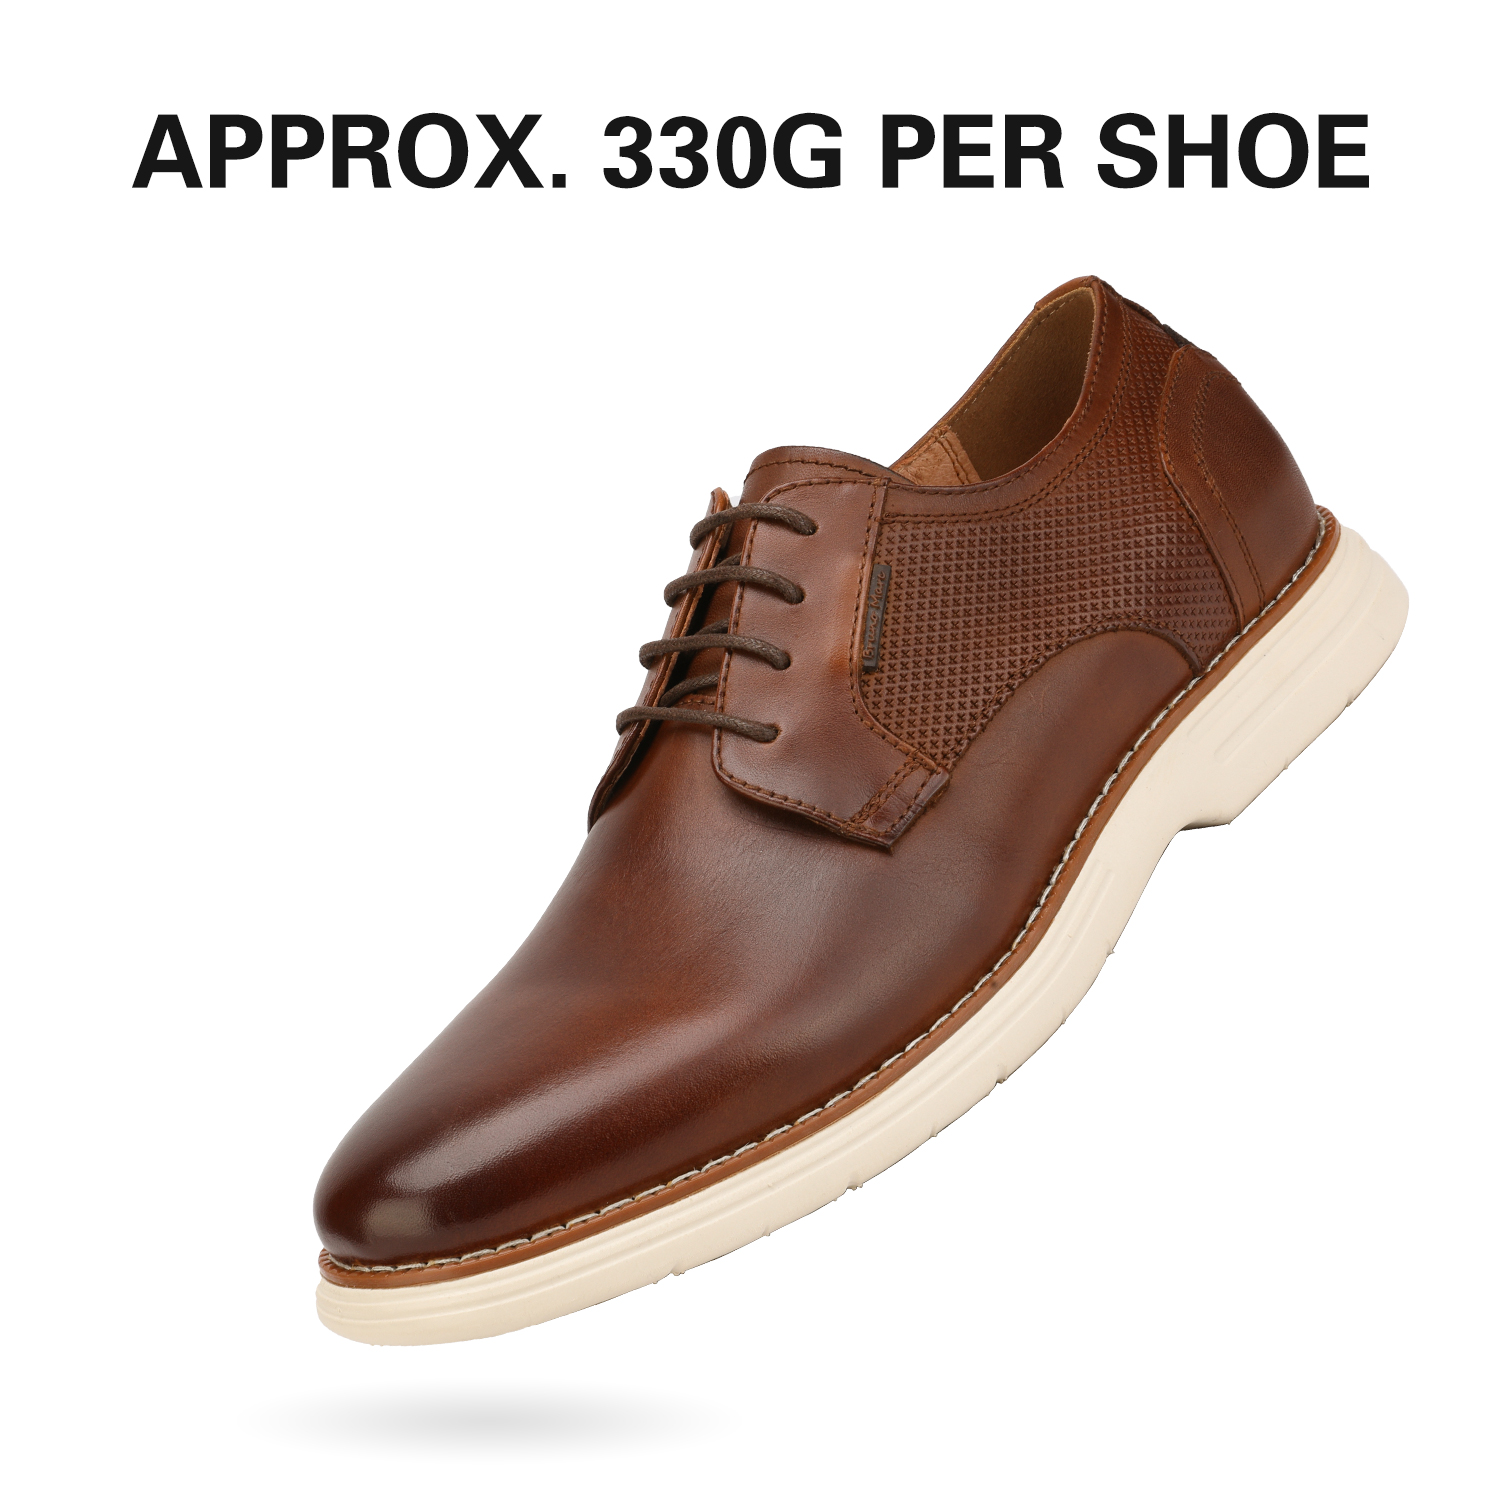 Mens-Fashion-Genuine-Leather-Business-Dress-Sneakers-Casual-Lace-up-Oxford-Shoe thumbnail 18